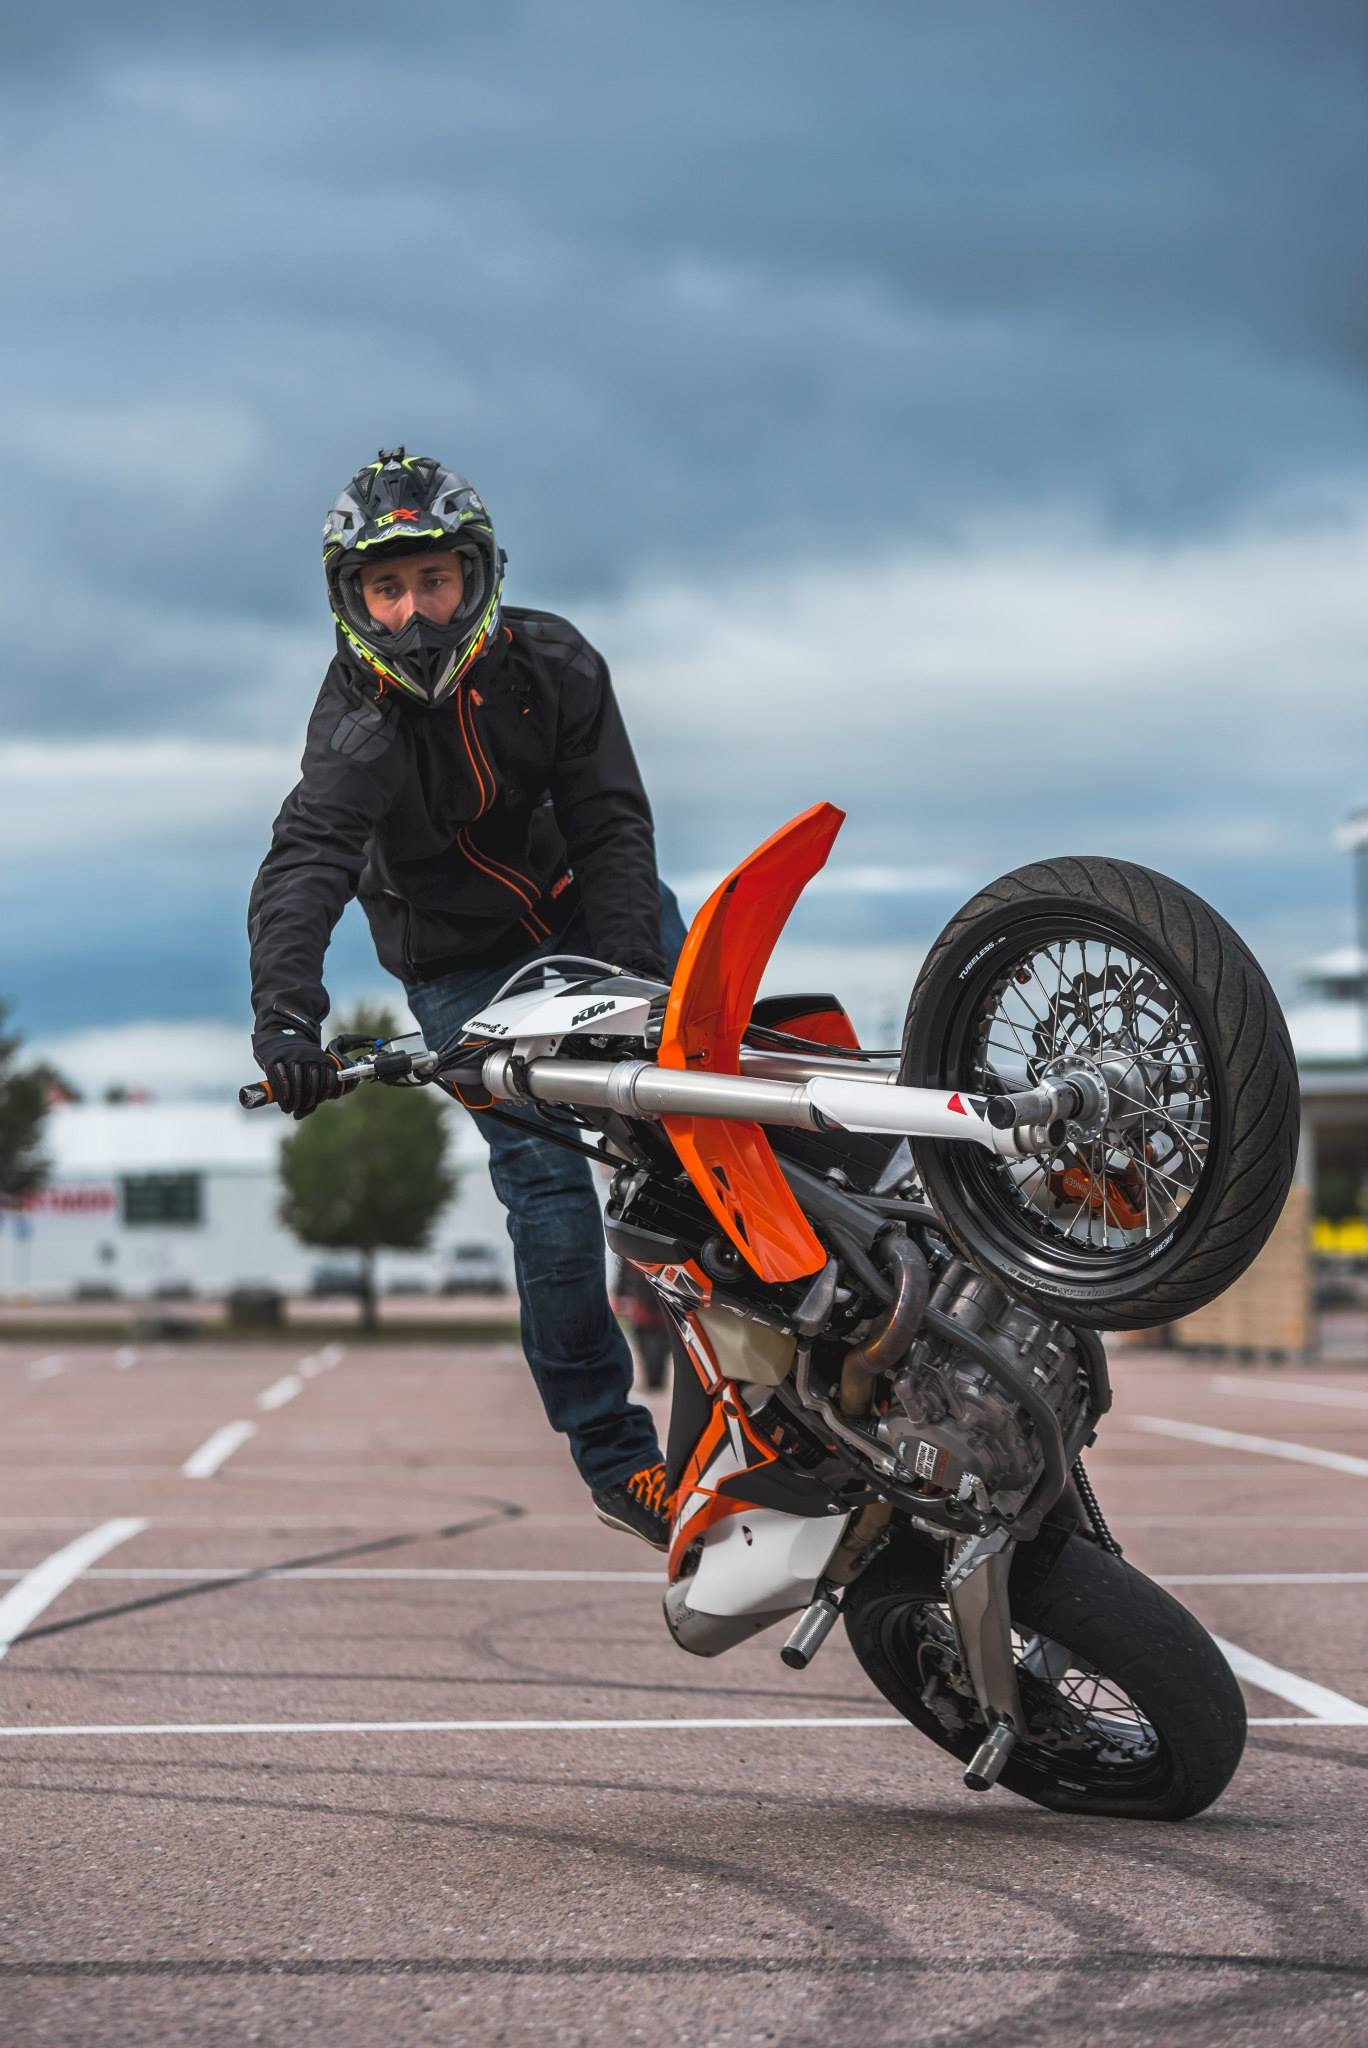 Ktm Motocross Wallpaper Hd Ktm Supermoto Stunts 450 Exc Amp Freeride E 2015